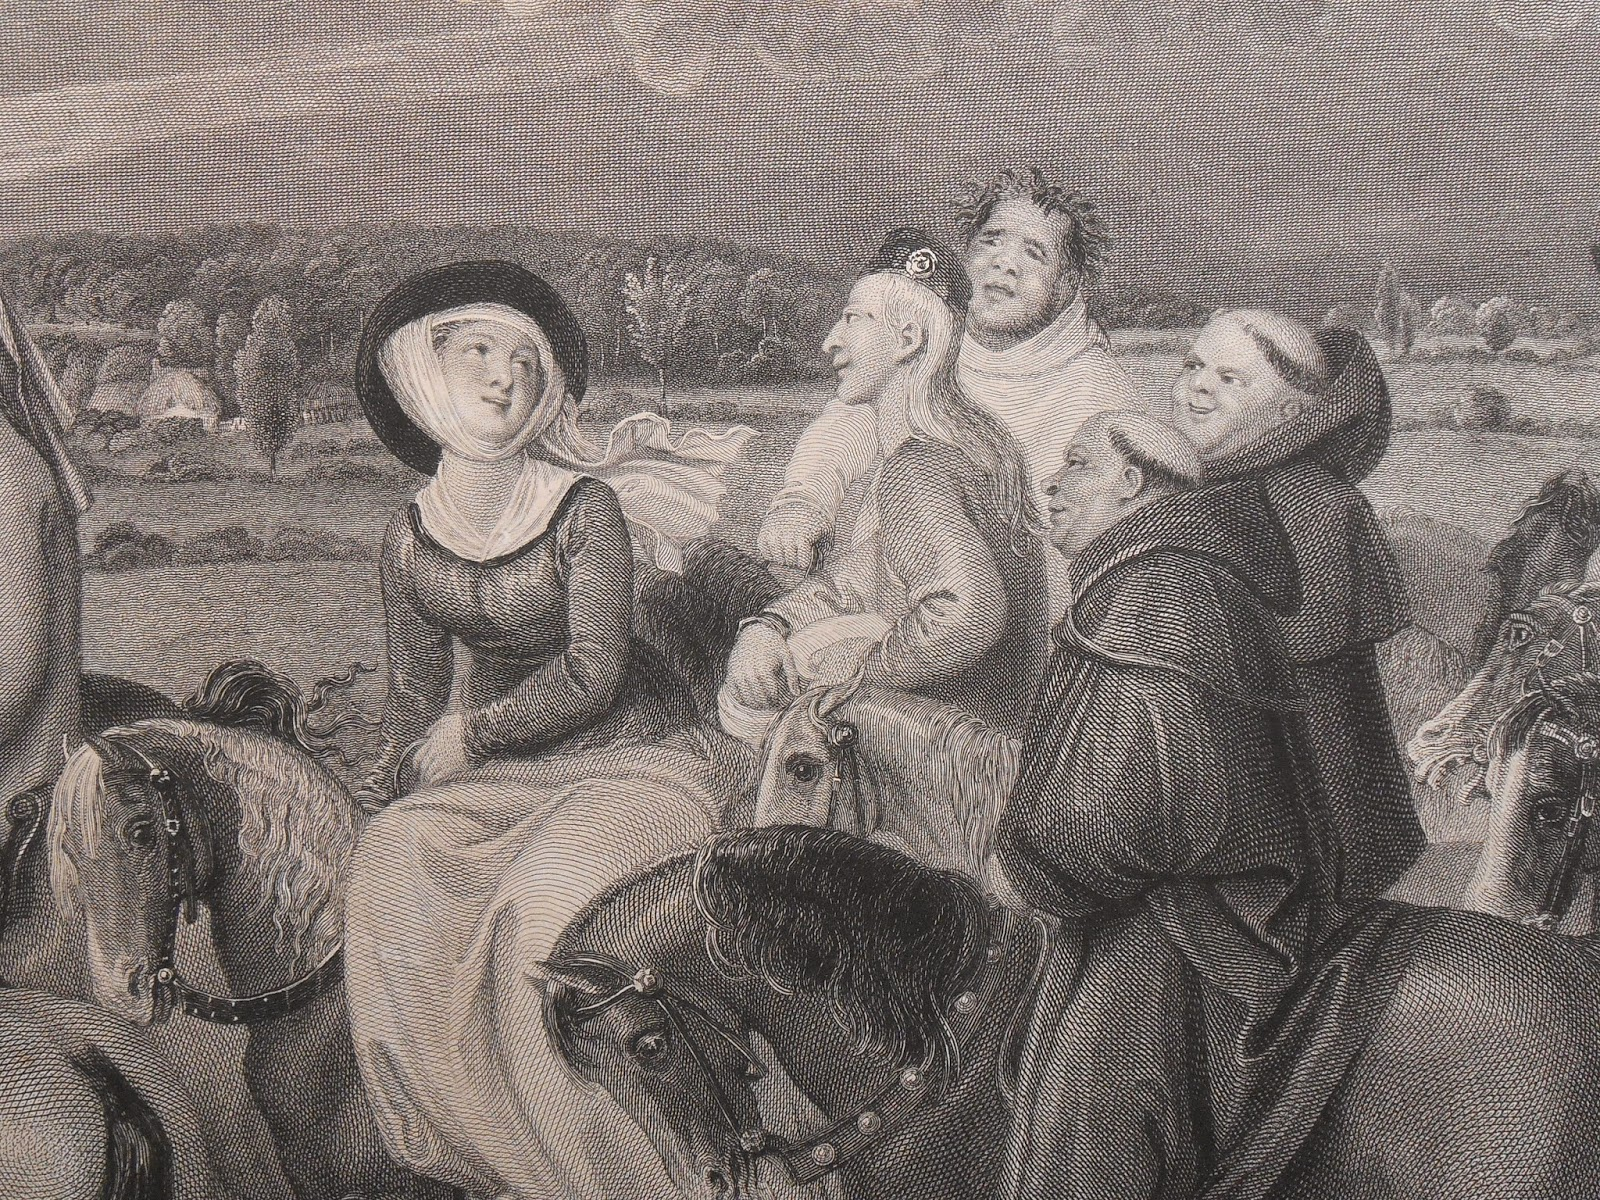 A detailed illustration of a young woman on horseback, smiling at the sky. Around her are male pilgrims on horseback, all lowering at her to varying degrees.